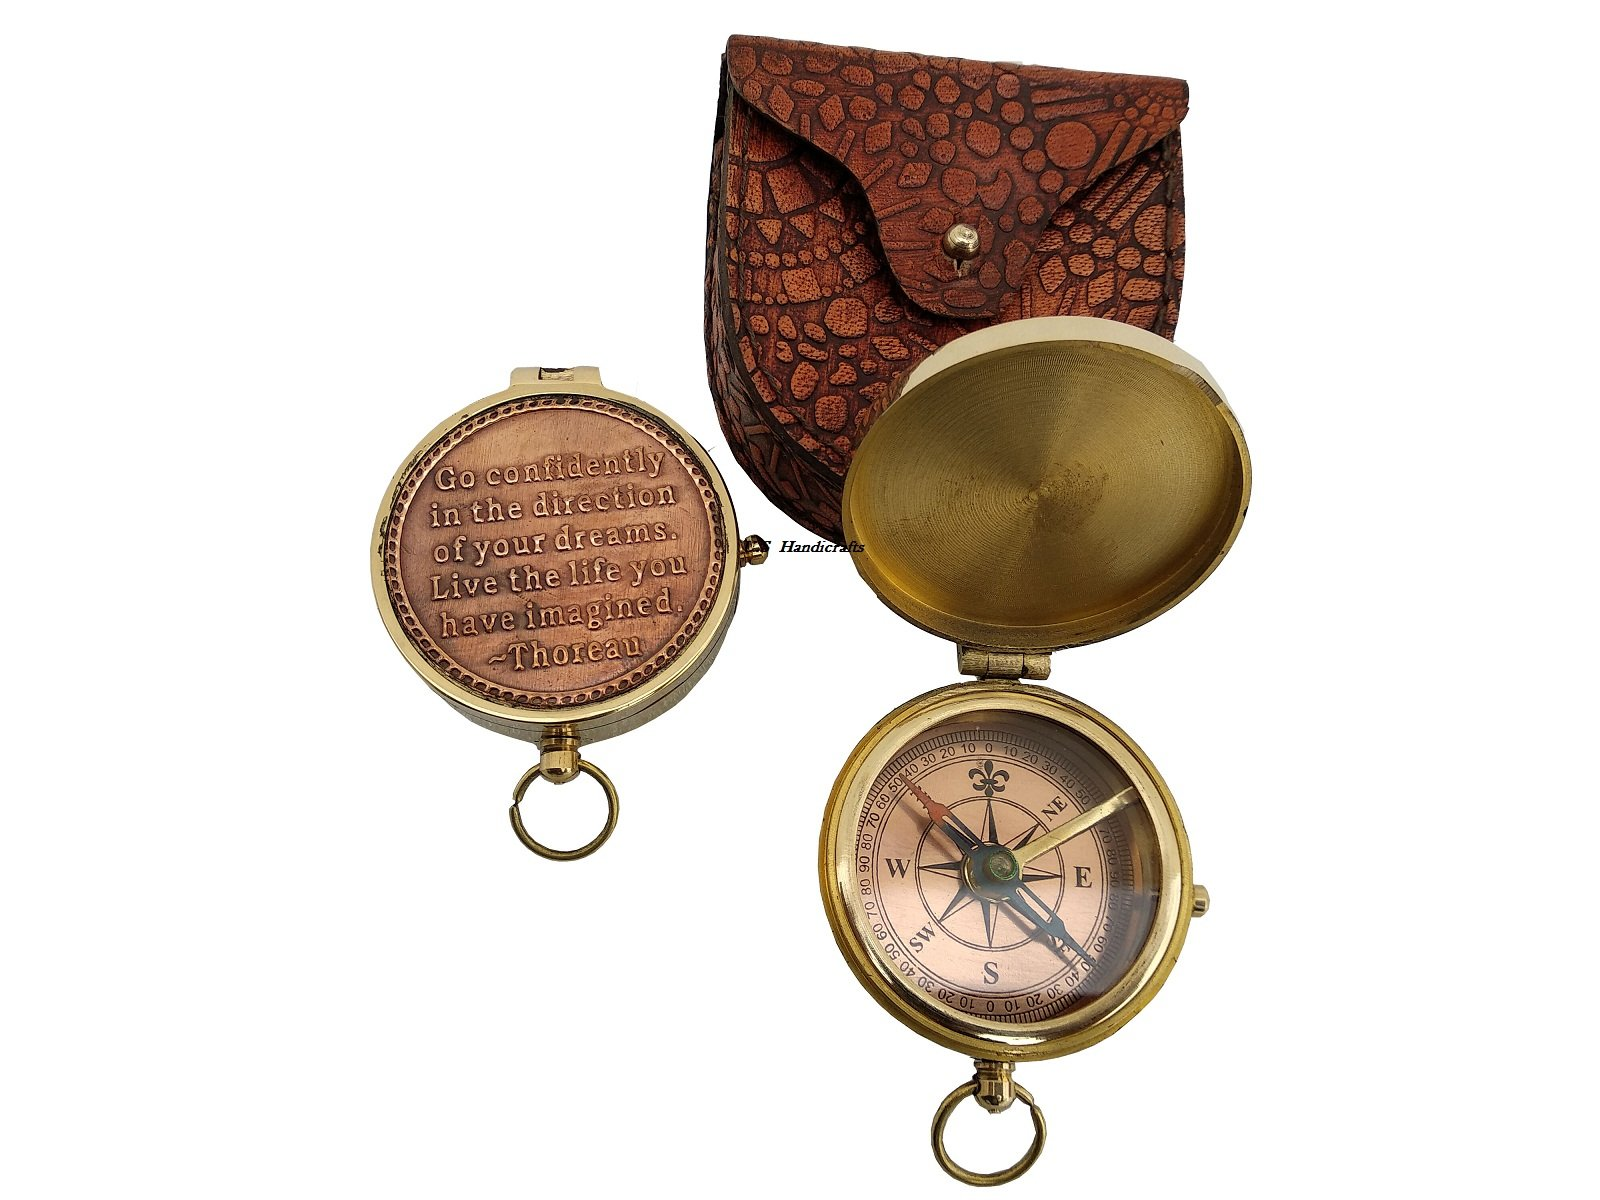 US HANDICRAFTS Ideas Xmas Present Black Friday Personalized Gifts for Her Cyber Monday - Thoreau's Go Confidently Quote Compass